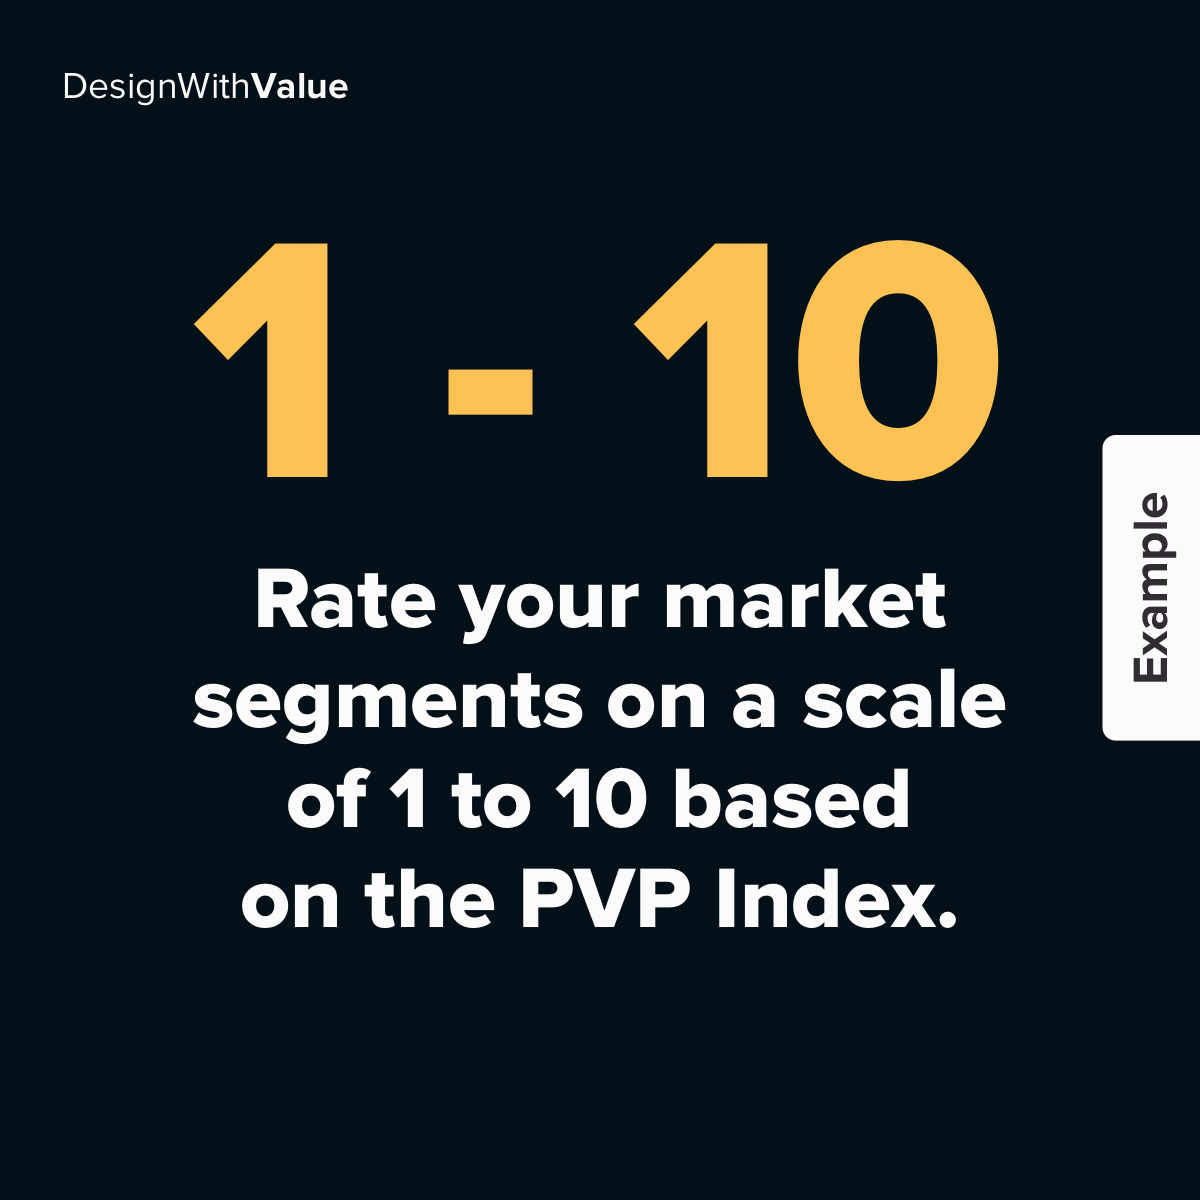 Rate your market segments on a scale of 1 to 10 based on the PVP index.